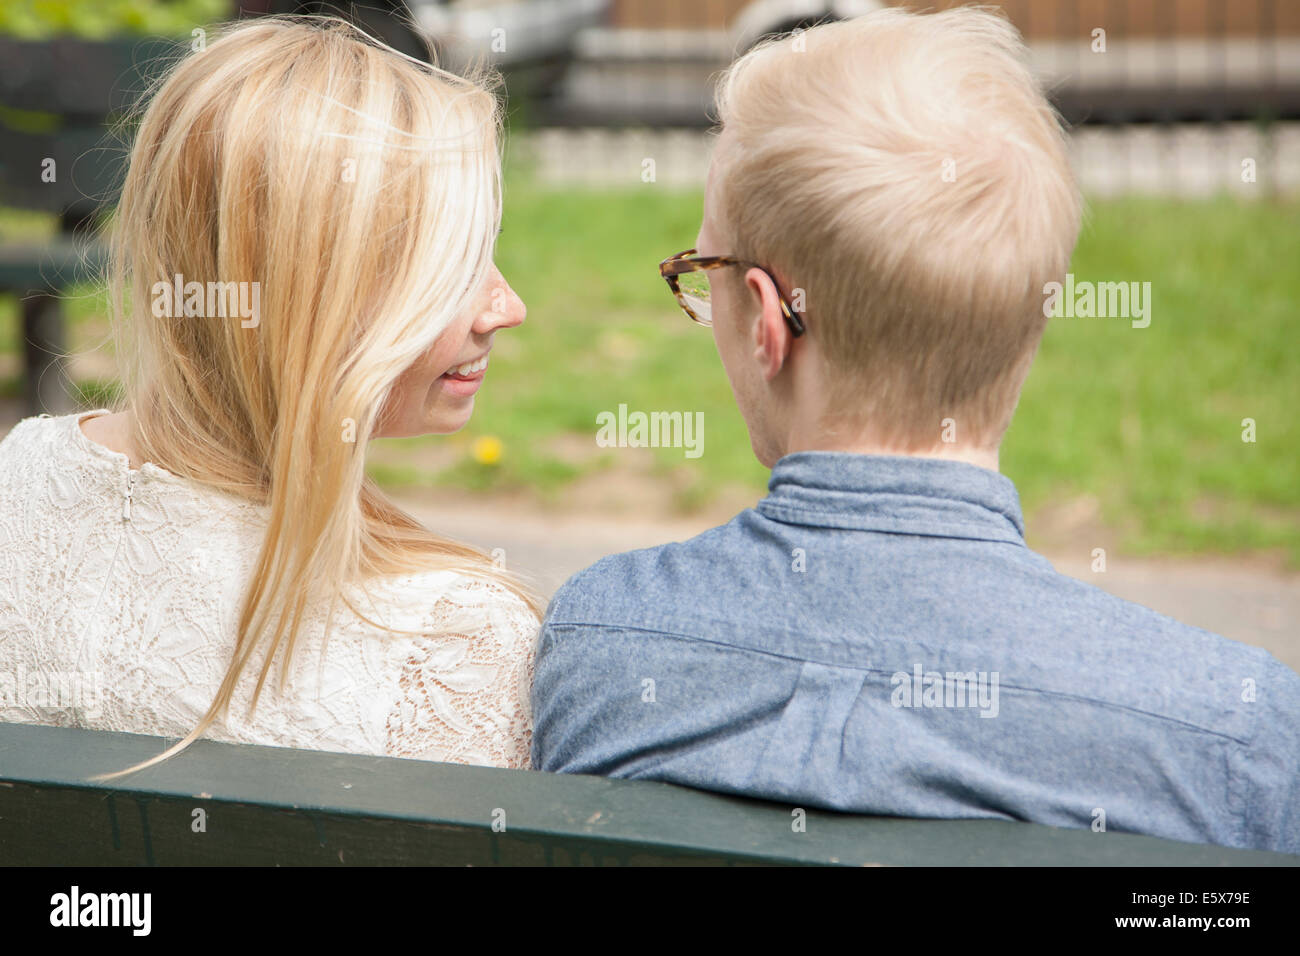 Over the shoulder view of young couple on park bench - Stock Image